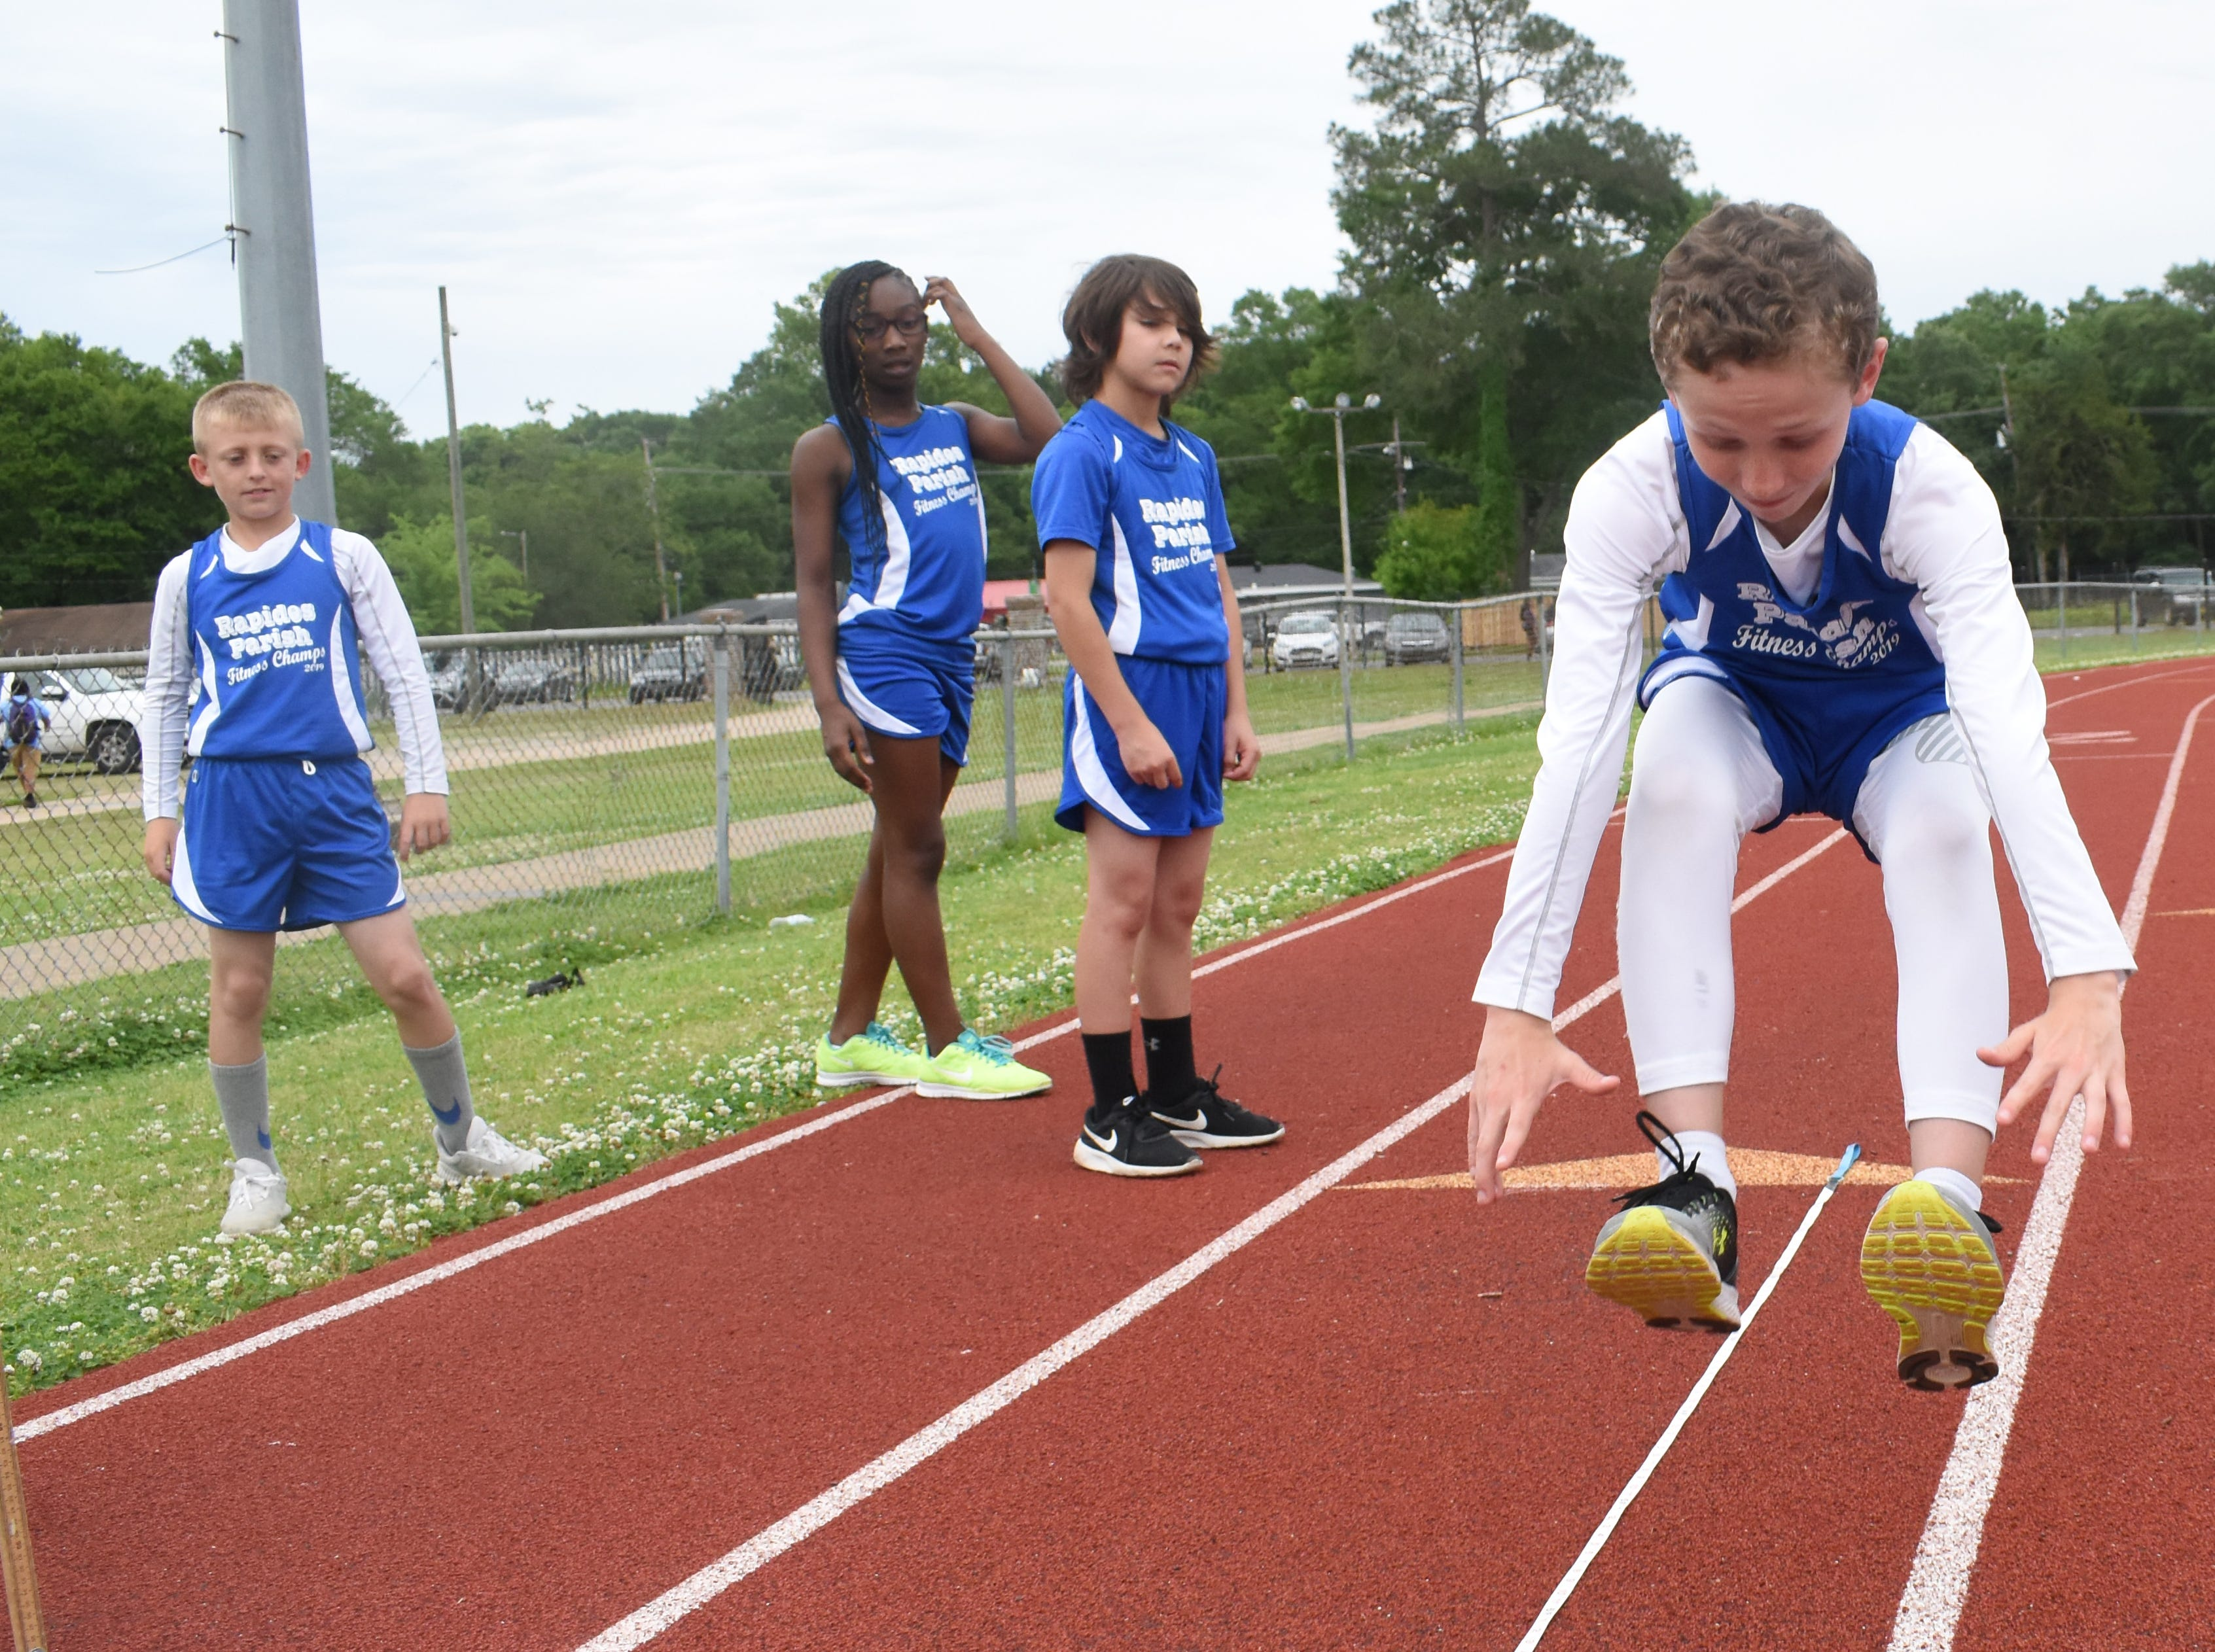 Jacob Dean (left) of Nachman Elementary School complete a long jump. Jacob is part the 2019 Rapides Parish Fitness Team. Jacob and five other Rapides Parish elementary school students will compete in the 2019 State Championship Fitness Meet to be held Saturday, April 27, 2019 at Alexandria Senior High School. The meet is part of the Governor's Council on Fitness and Sports. Students from throughout Louisiana will compete in seven events: 50-yard dash, sit and reach, pull-ups,  shuttle run, curl-ups (sit-ups), standing long jump, and the 600-yard run. For the past three years, the Rapides Parish Fitness Team has placed first at the meet. Dean was the highest scoring boy last year and won the title of 2018 Mr. Fitness for the State of Louisiana. The meet will be from 10 a.m. to 2 p.m.